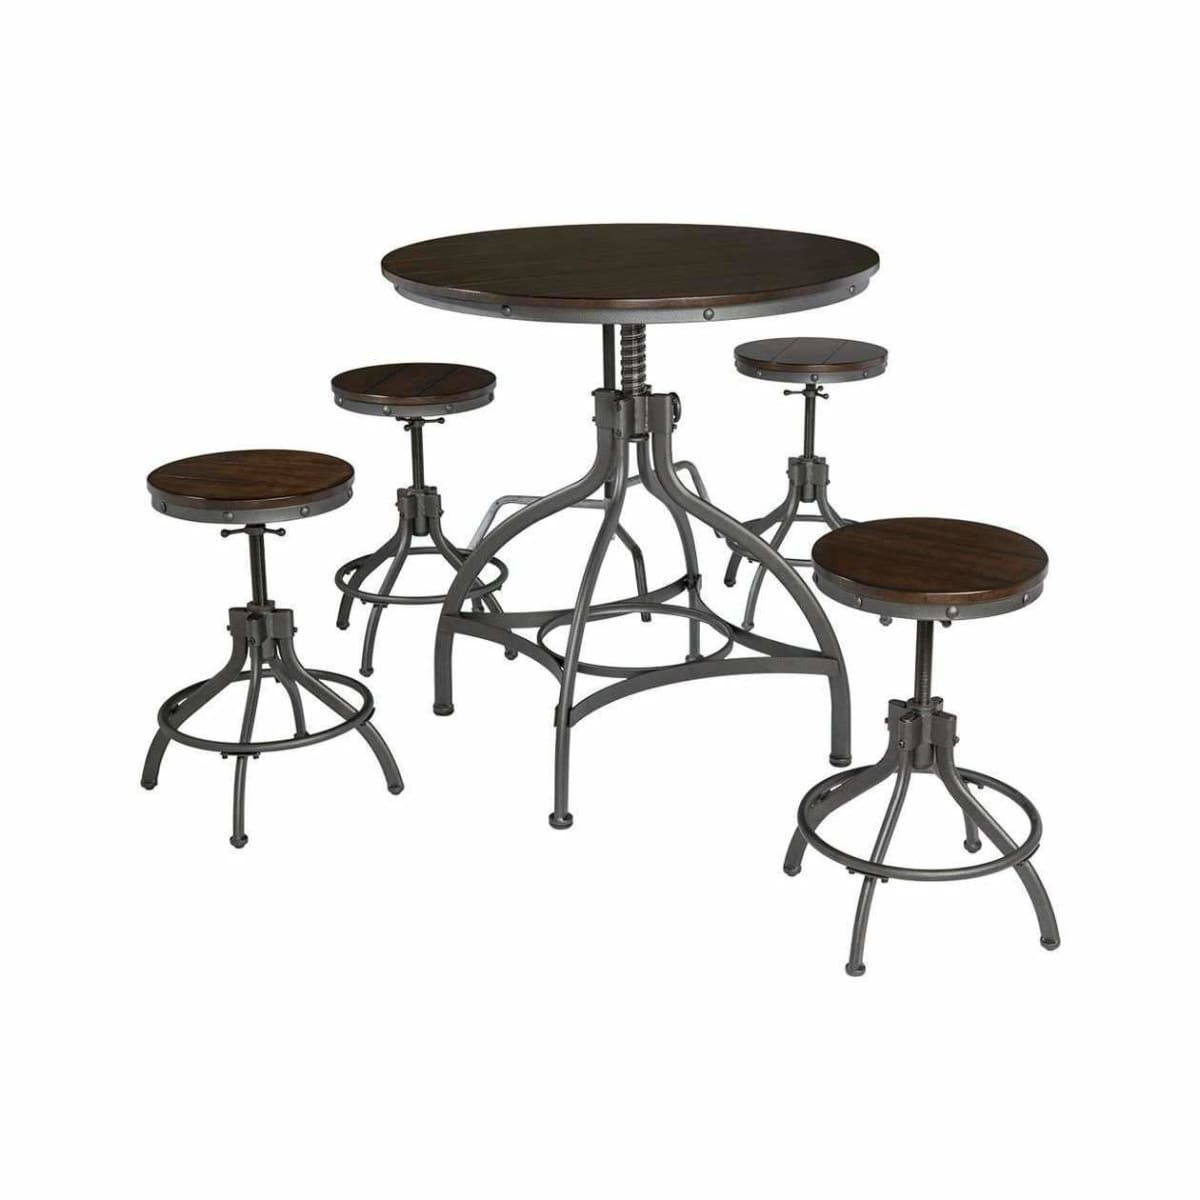 Odium Counter Height Dining Room Table and Bar Stools (Set of 5) - DININGCOUNTERHEIGHT